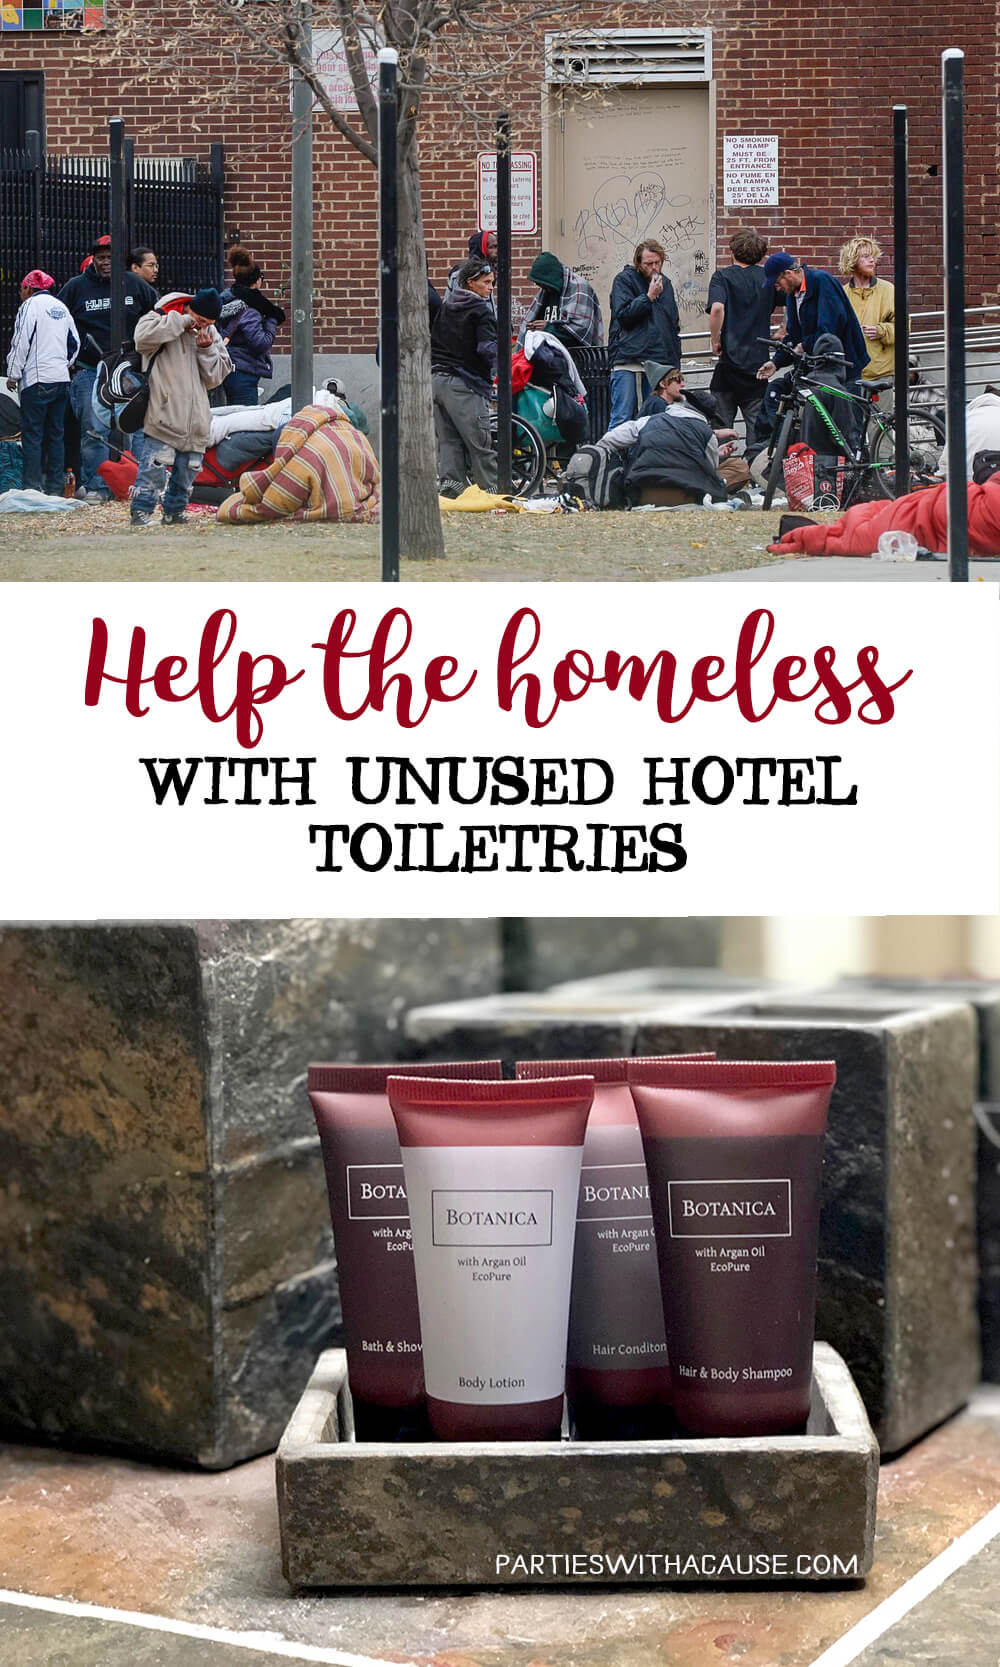 Help the homeless with unused hotel toiletries